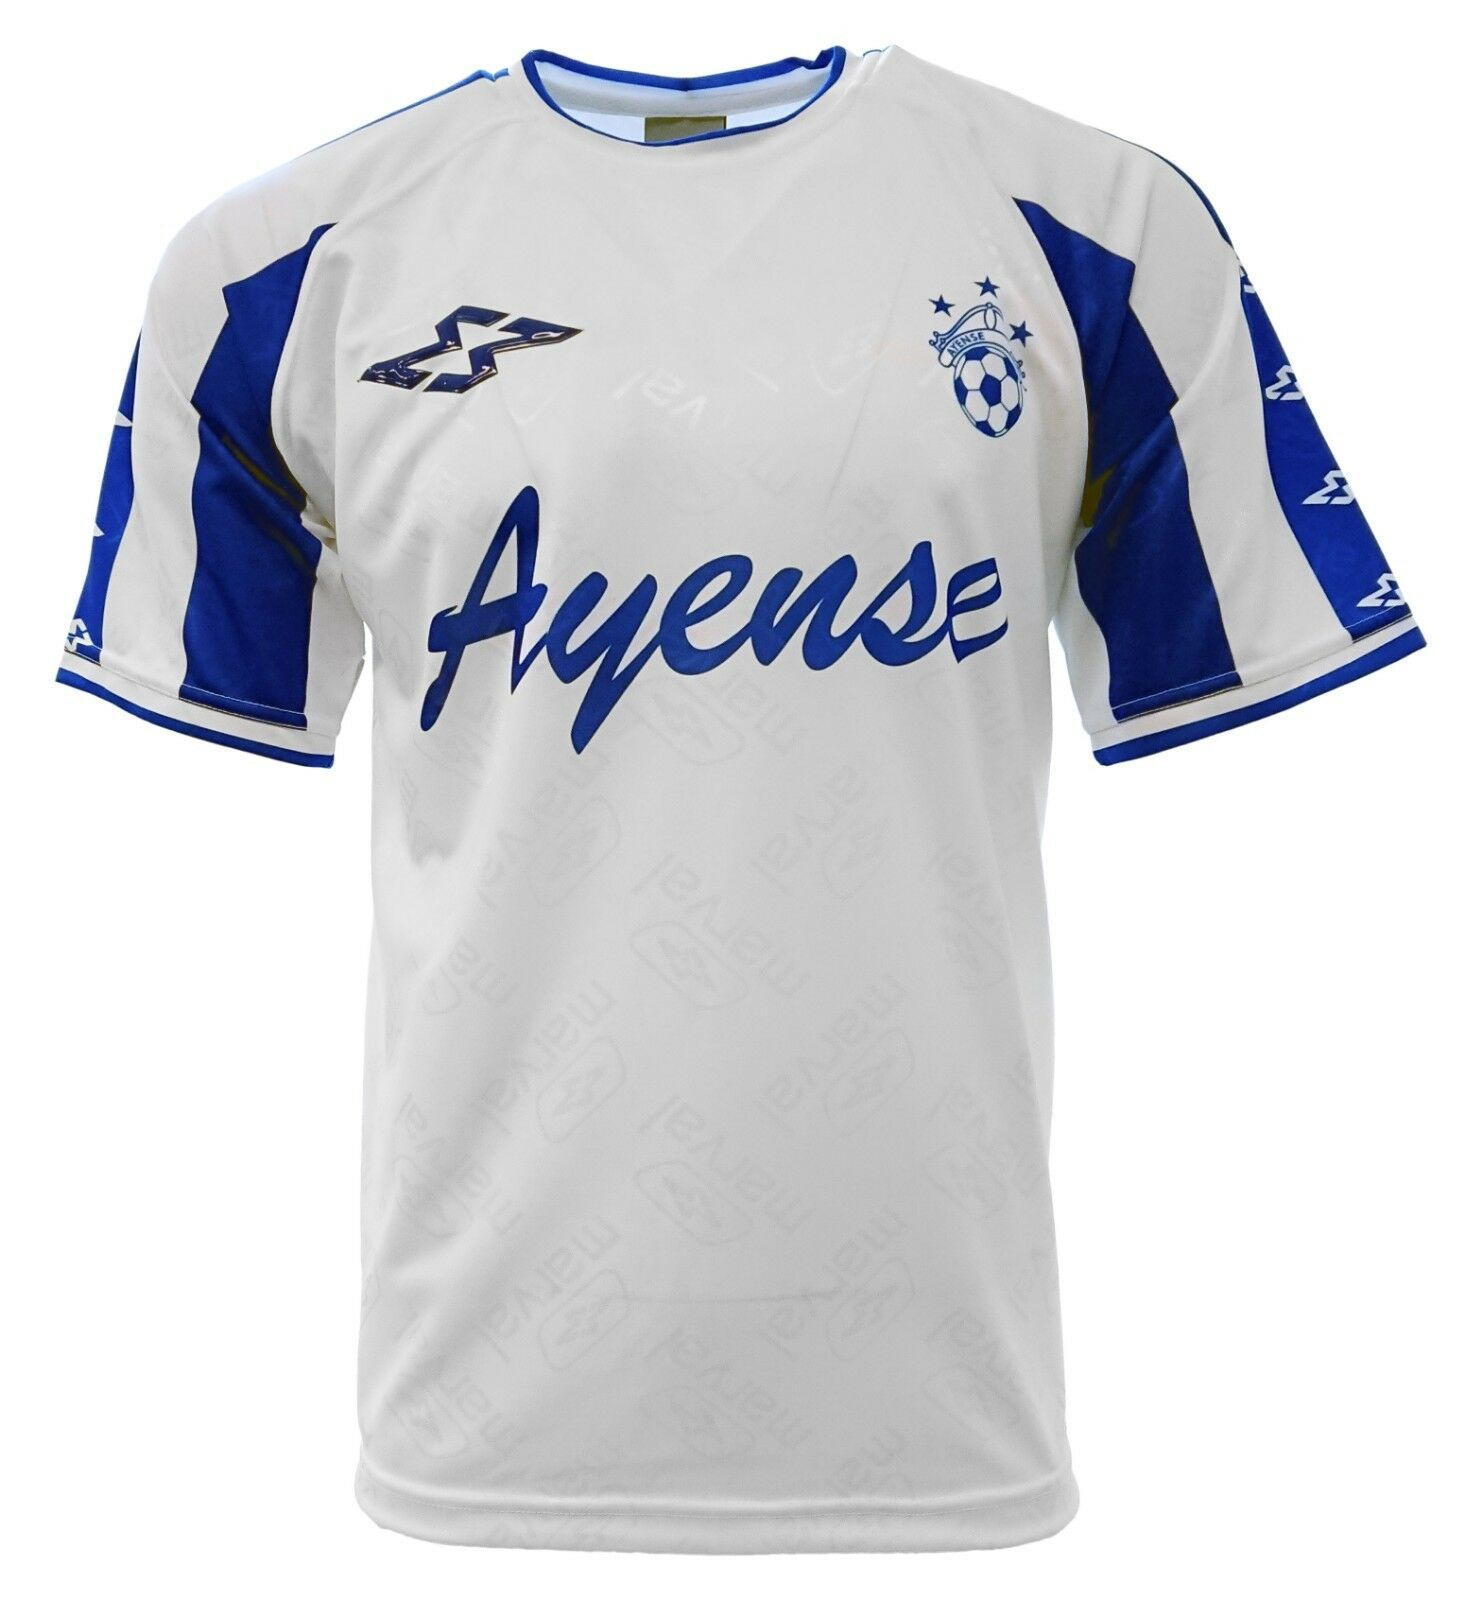 Ayense Adult Men Soccer Jersey White  by Marval